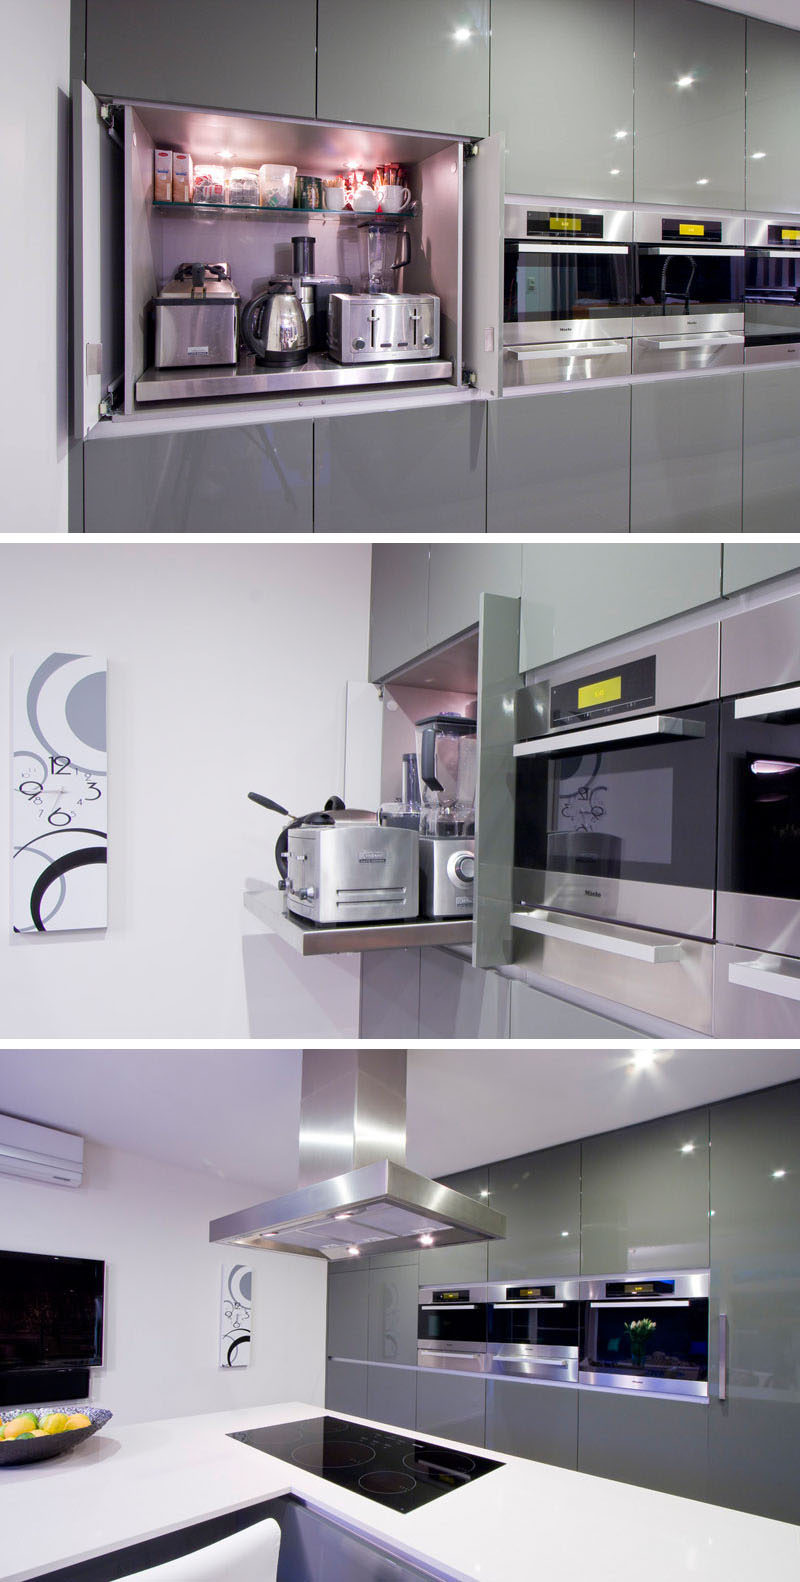 Kitchen Design Idea - Store Your Kitchen Appliances In A Dedicated Appliance Garage // The main shelf of this appliance garage pulls out to make it easier to access the appliances stored at the back.